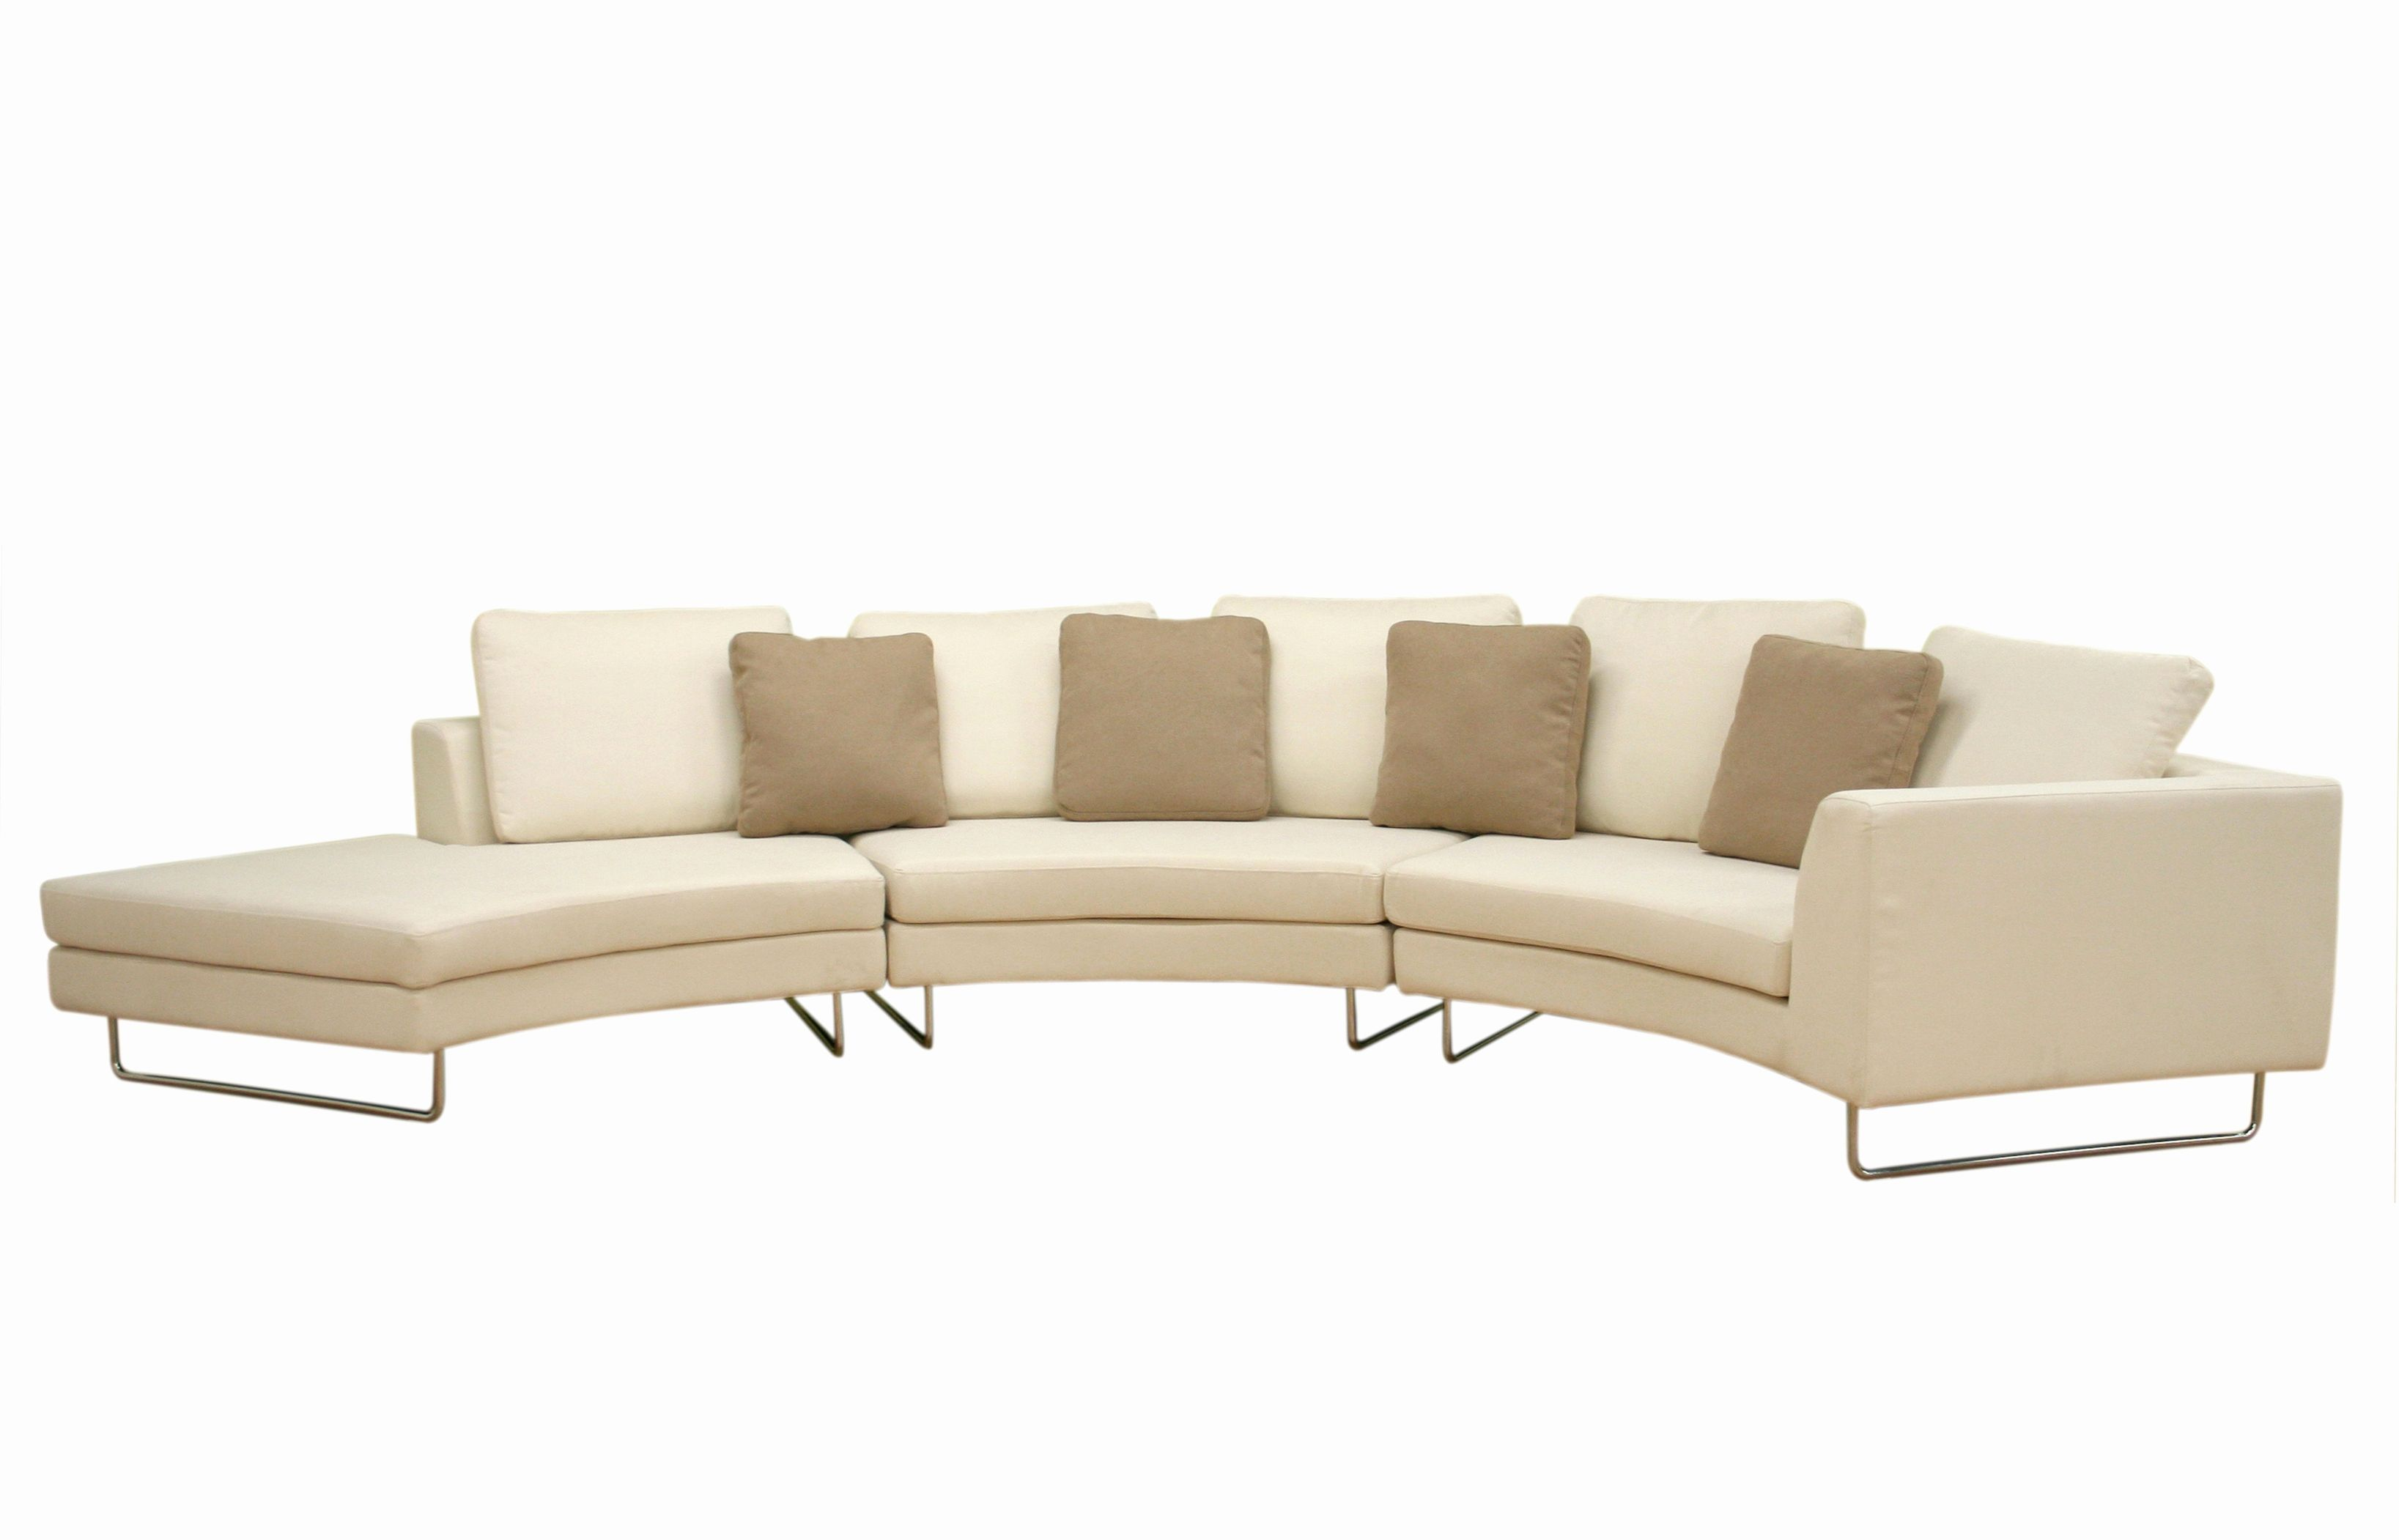 Awesome Modern Sectionals Sofas Graphics Modern Sectionals Sofas Inspirational Furniture Using Curved Sectiona Sectional Sofa Curved Sofa Modern Sofa Sectional